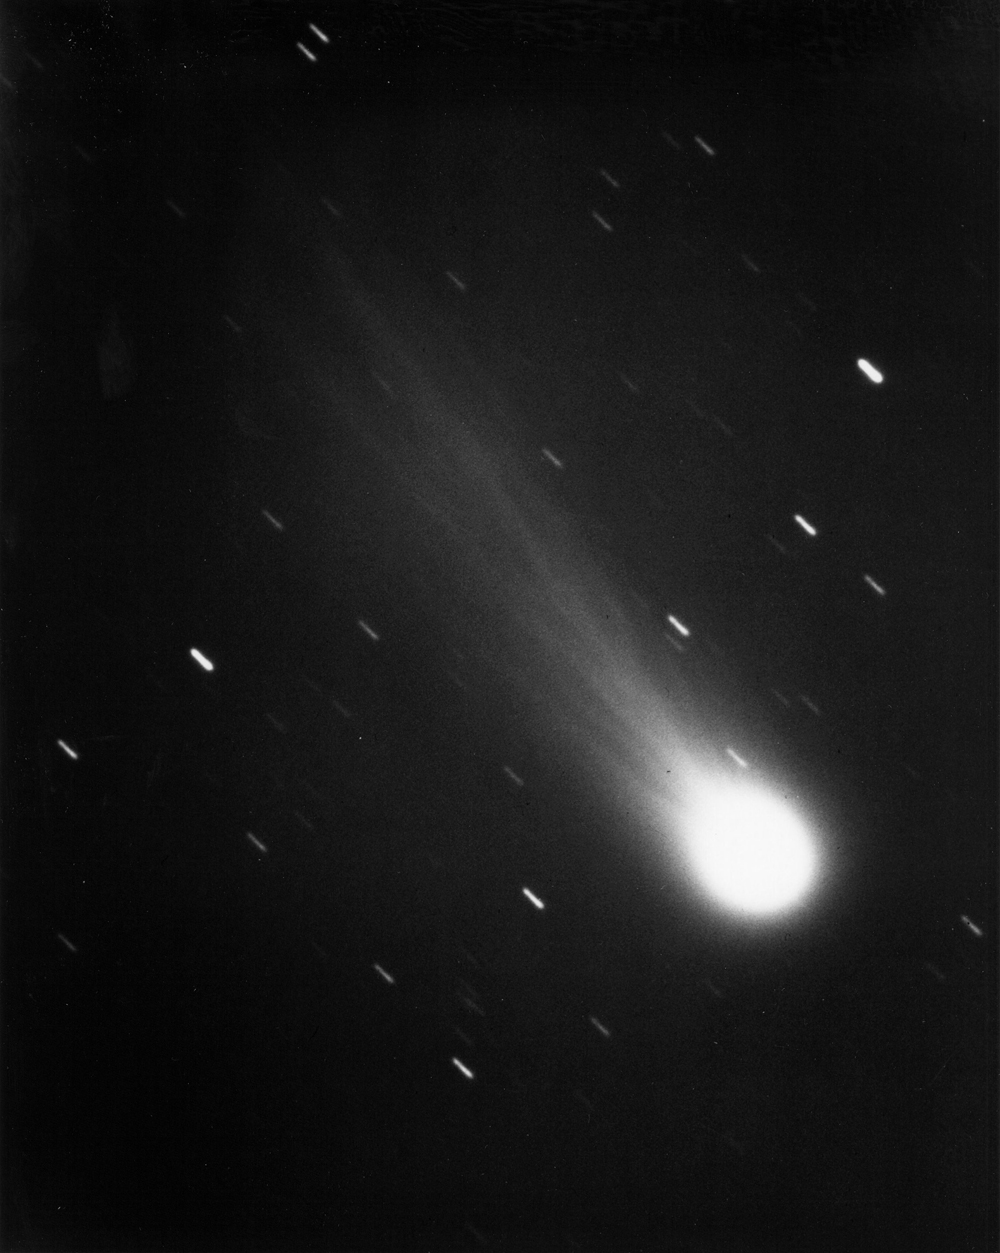 Why don't comets appear to zoom across the sky?